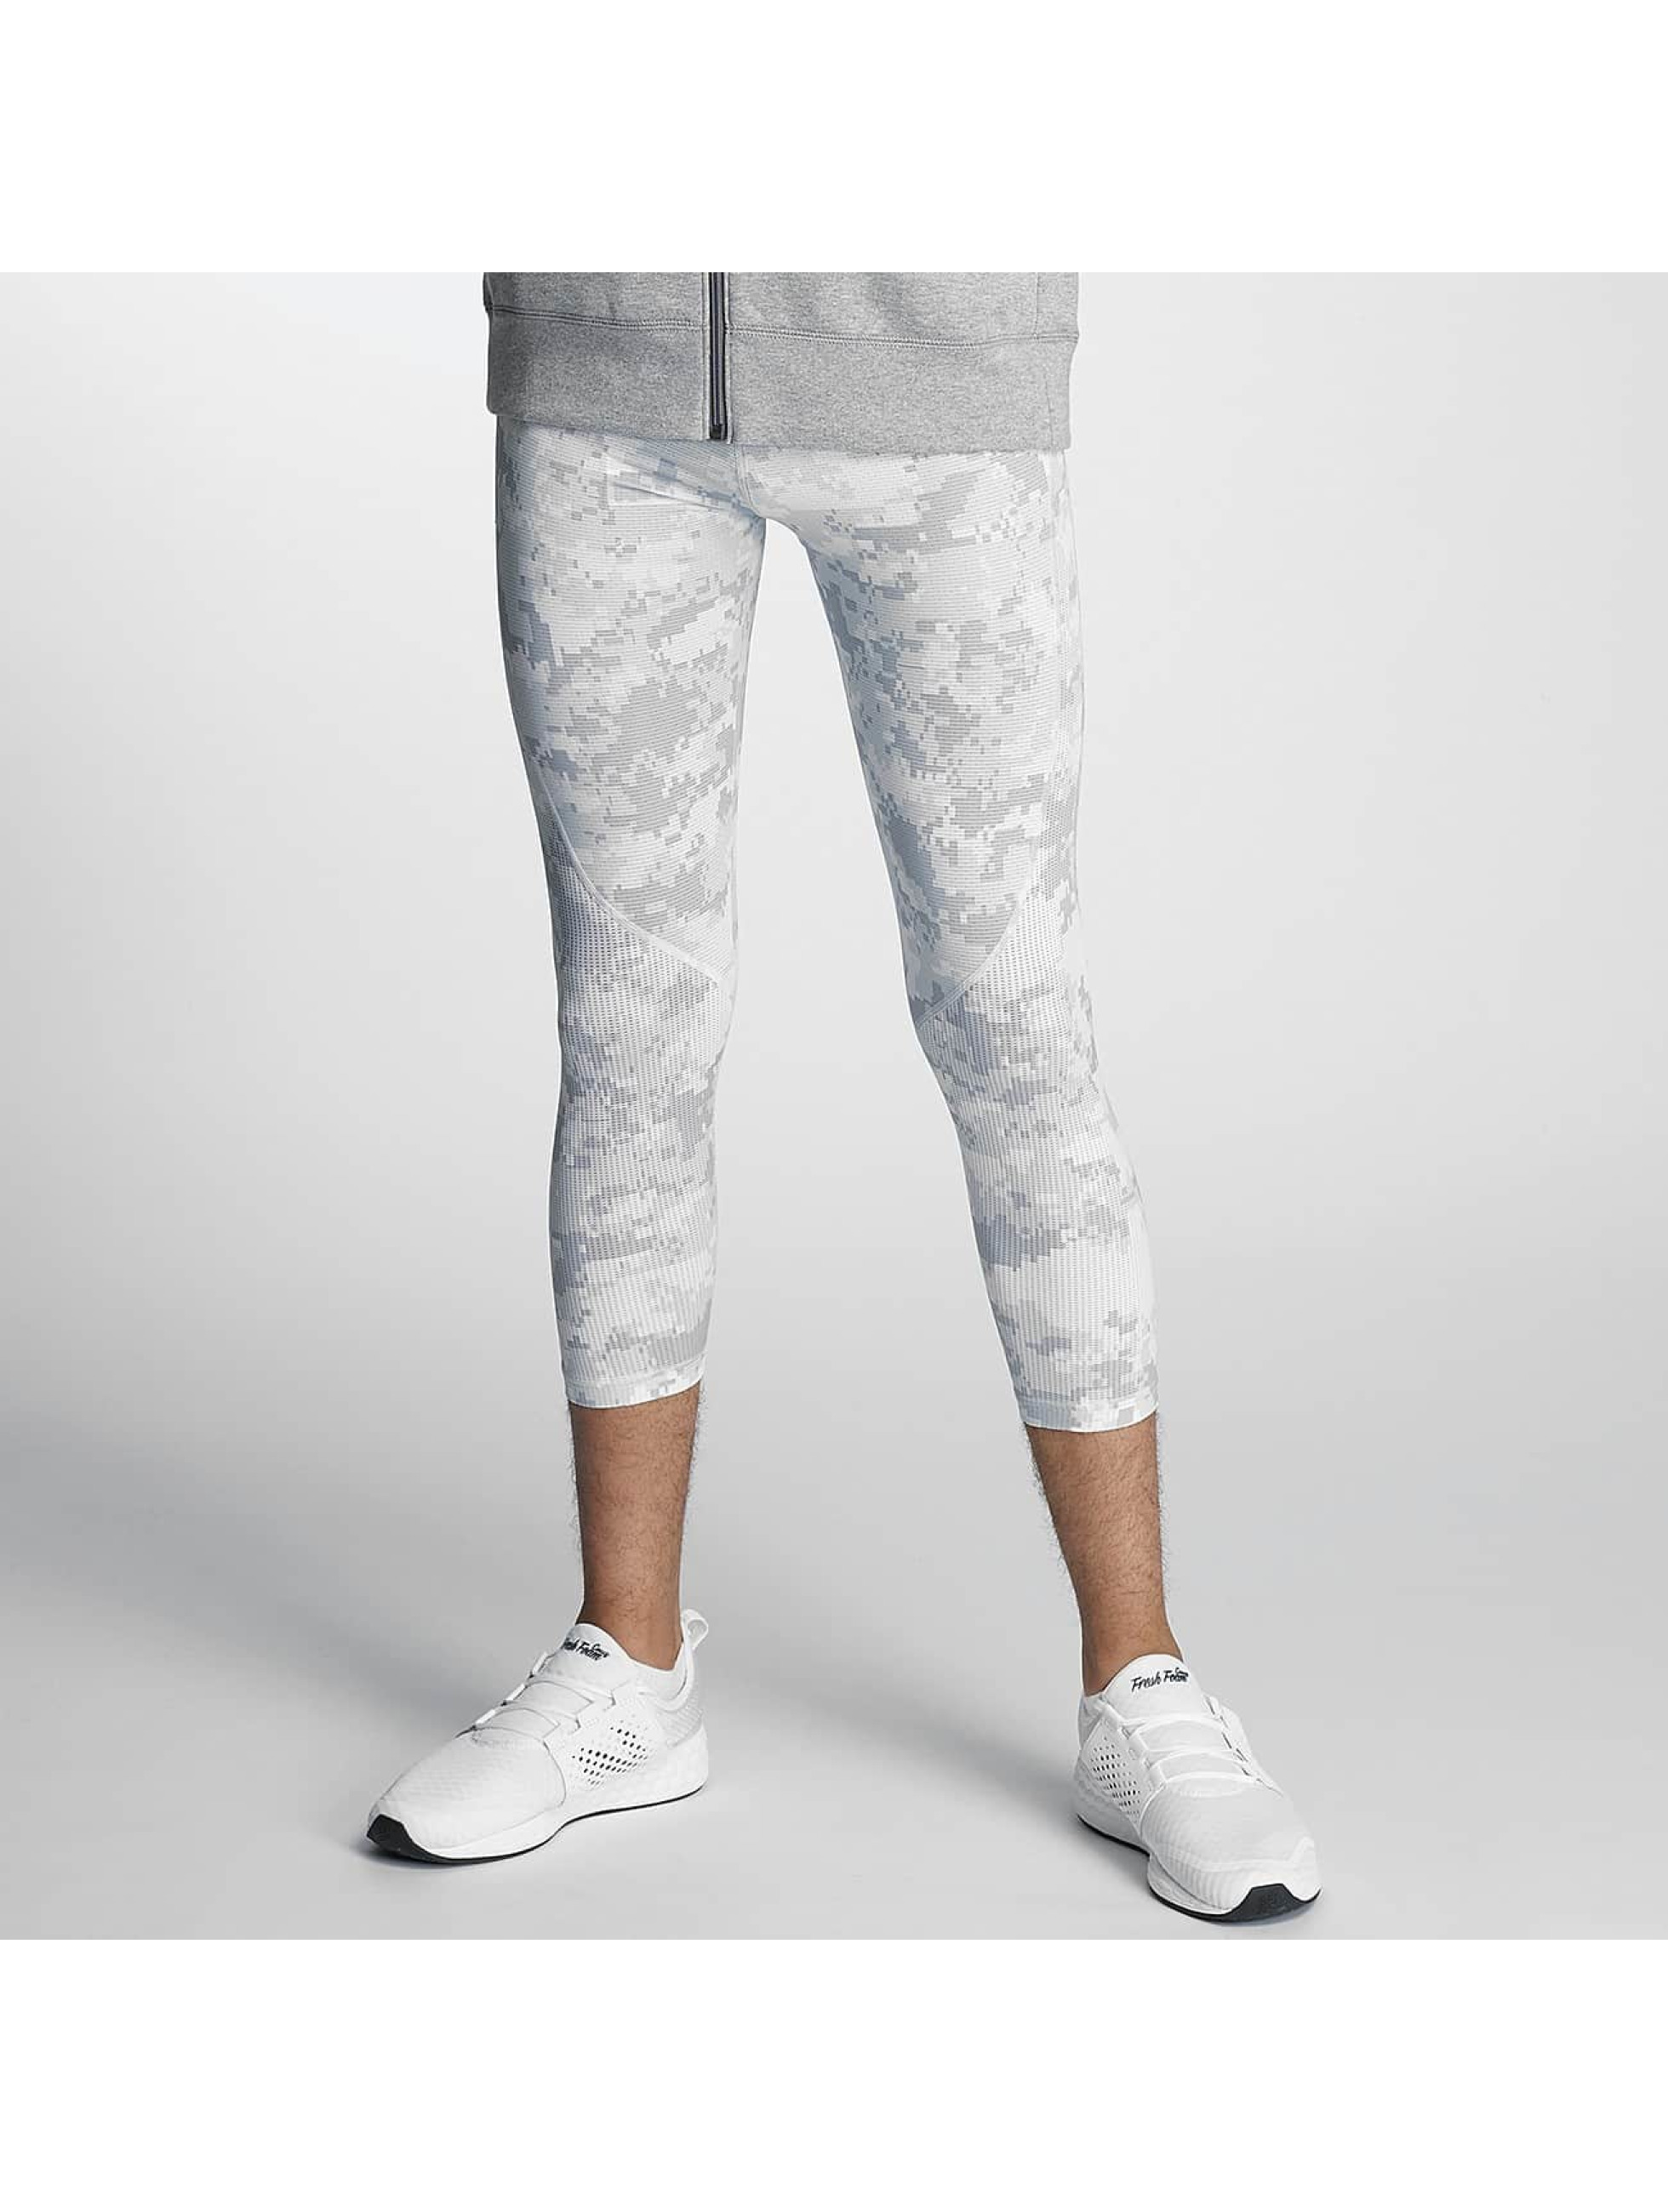 Nike Pro Hypercool Tight Legging White/Pure Platinum/Black